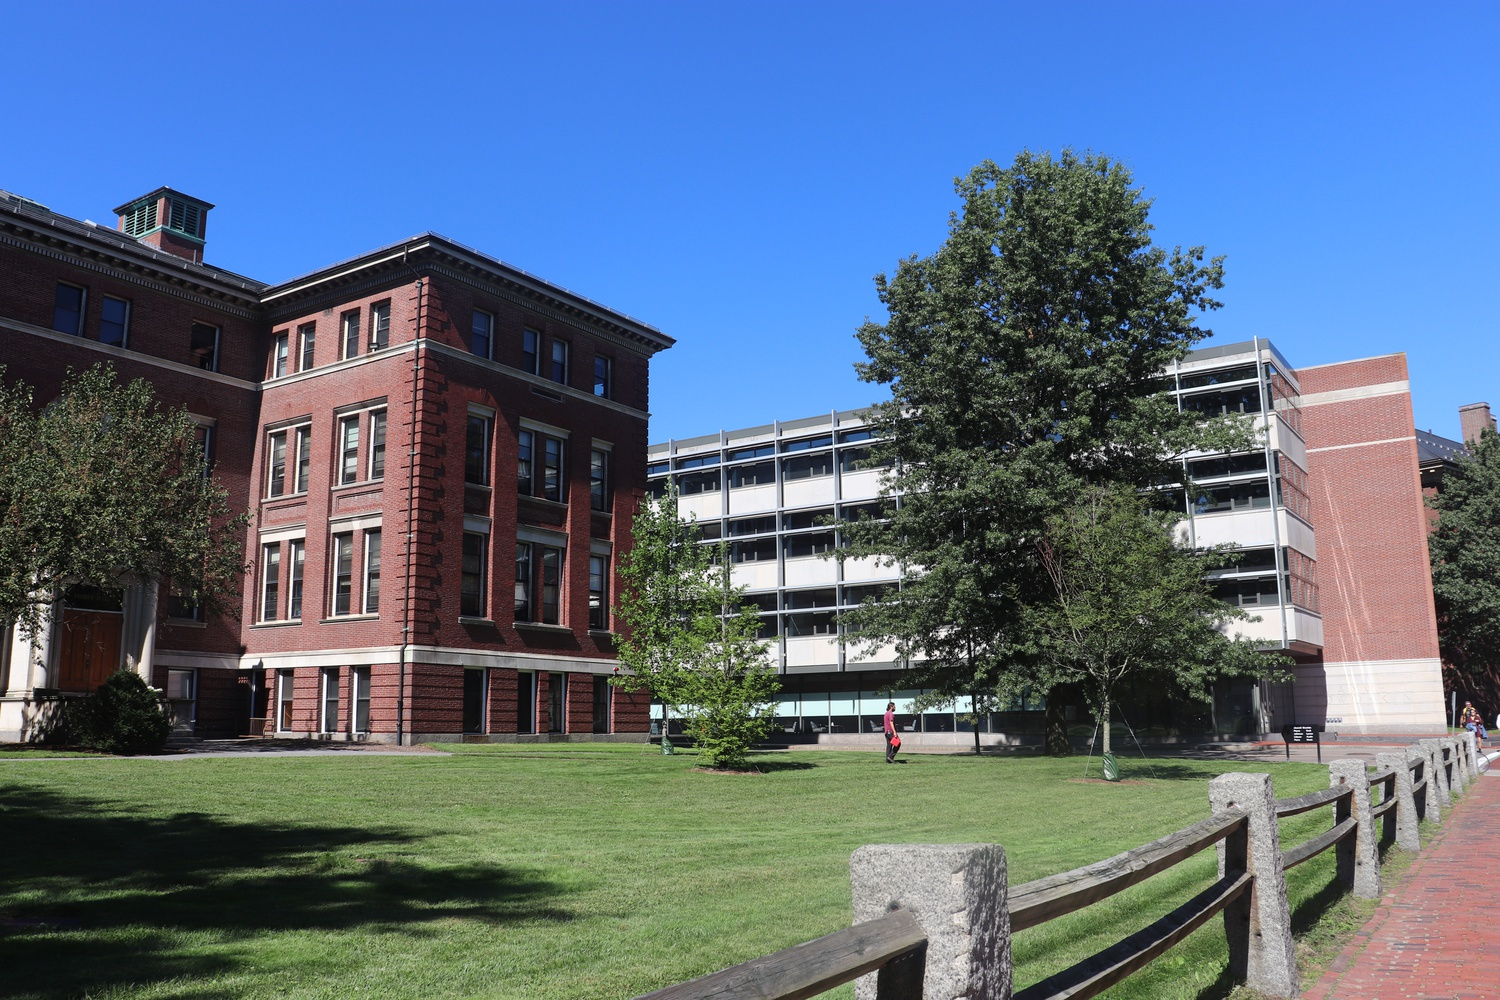 Pierce Hall (left) and Maxwell Dworkin Laboratory (right) house facilities used by the School of Engineering and Applied Sciences.